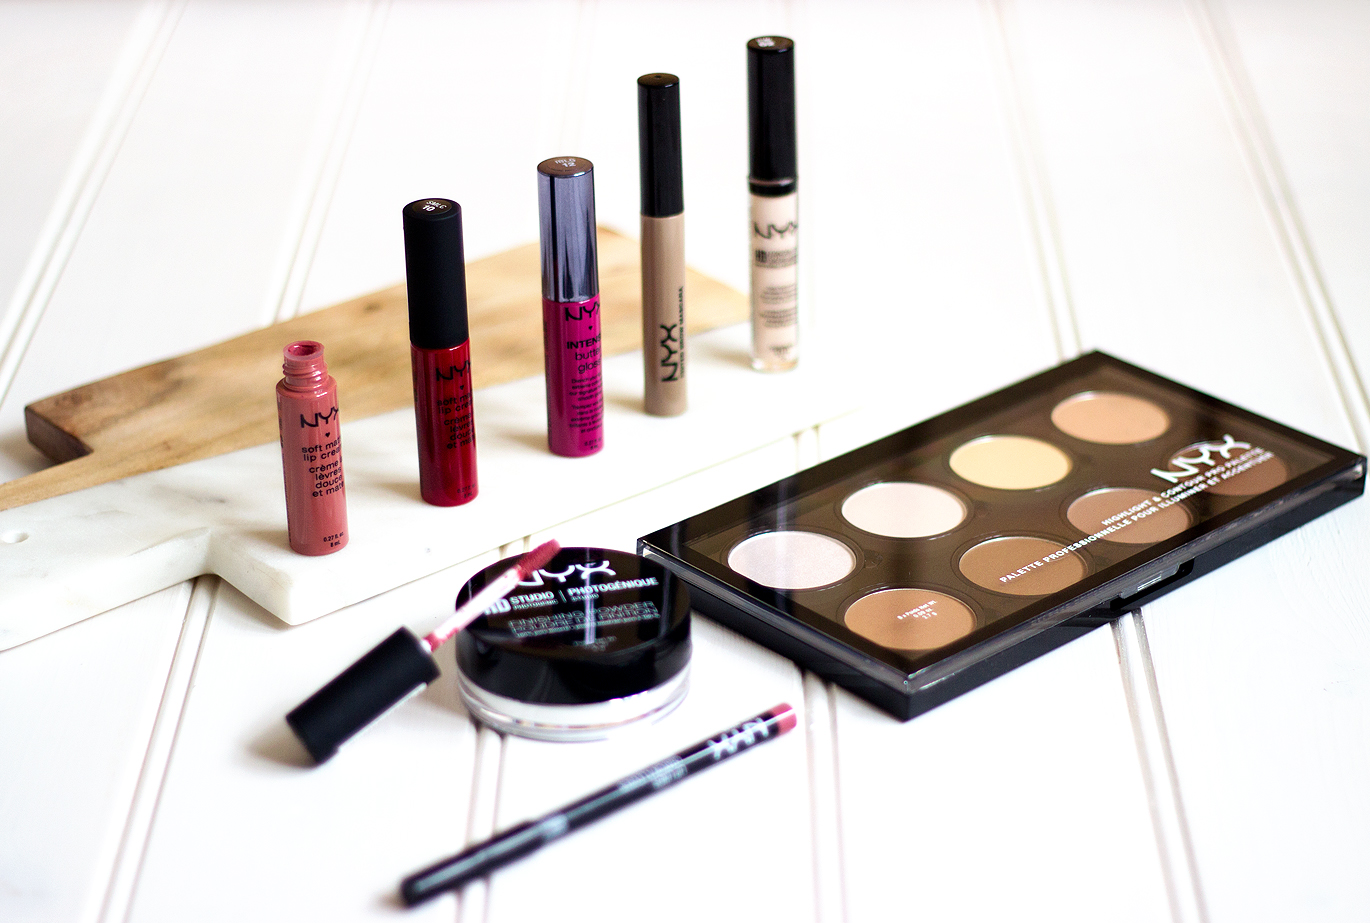 Brand Focus: My Top NYX Picks